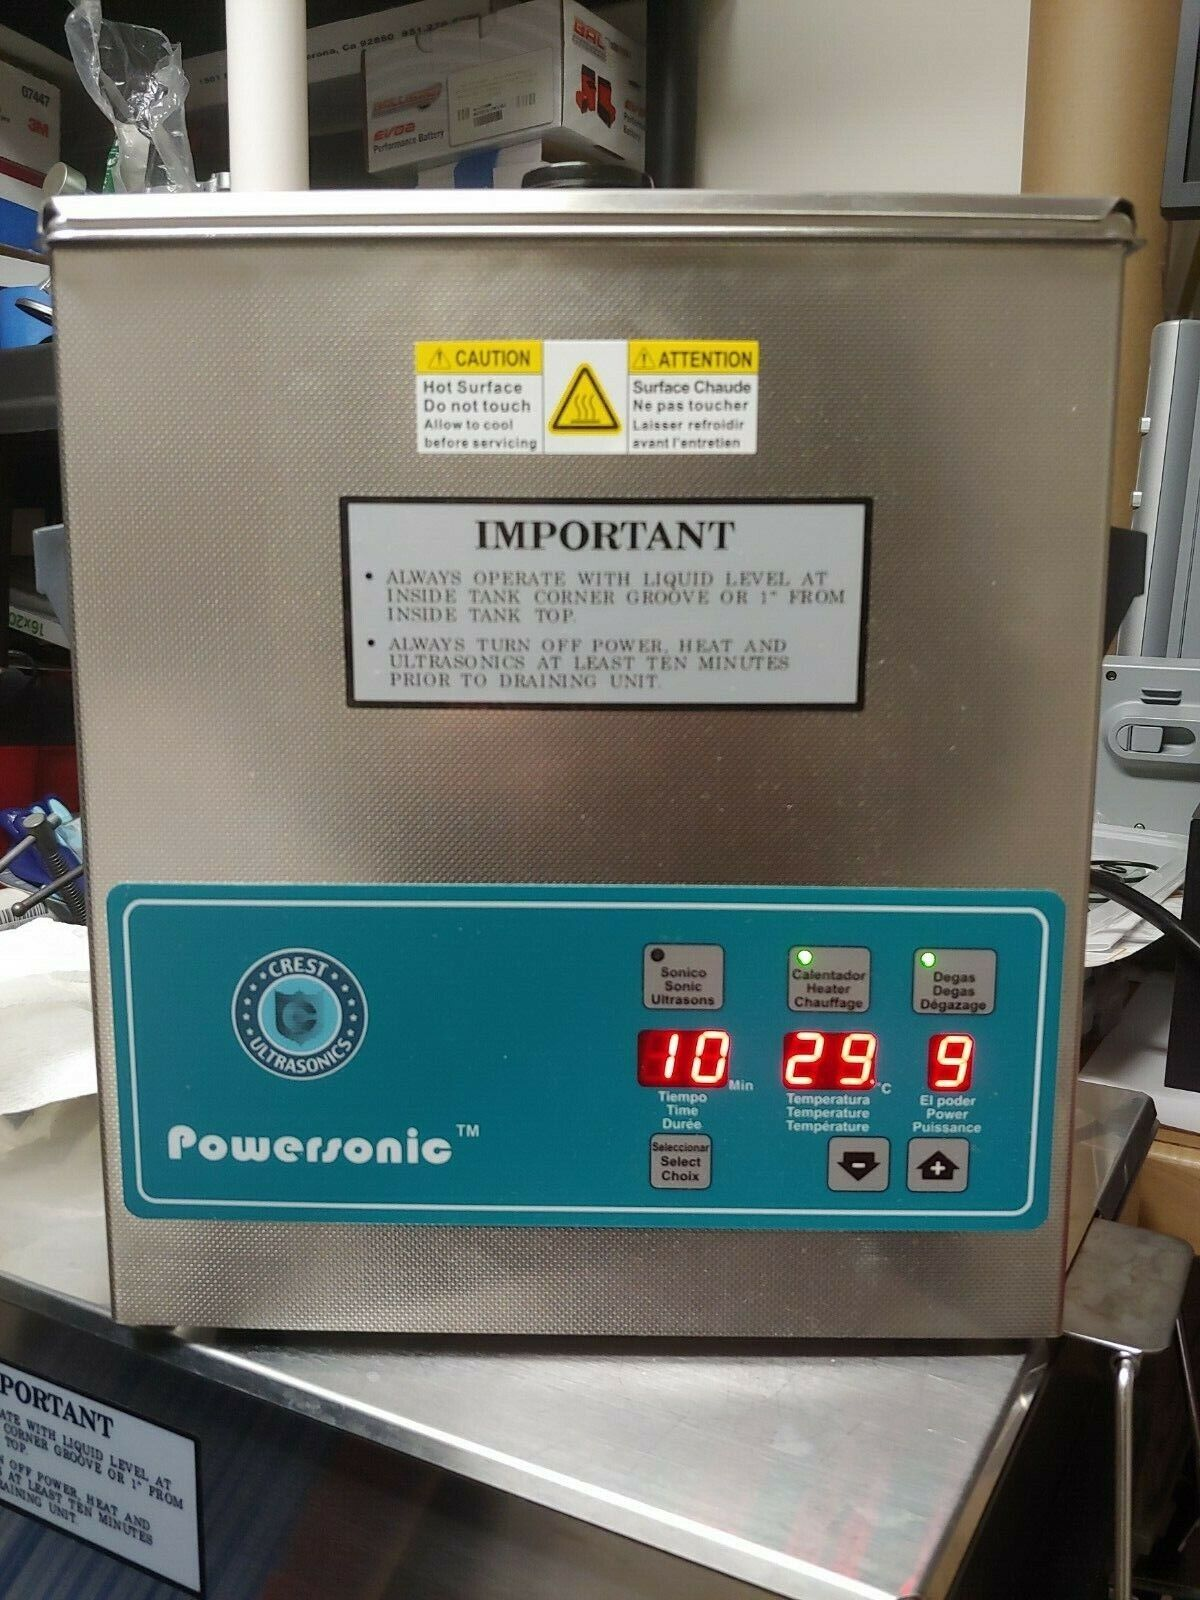 Crest Powersonic P360D-45 Ultrasonic Cleaner with Heat, Time